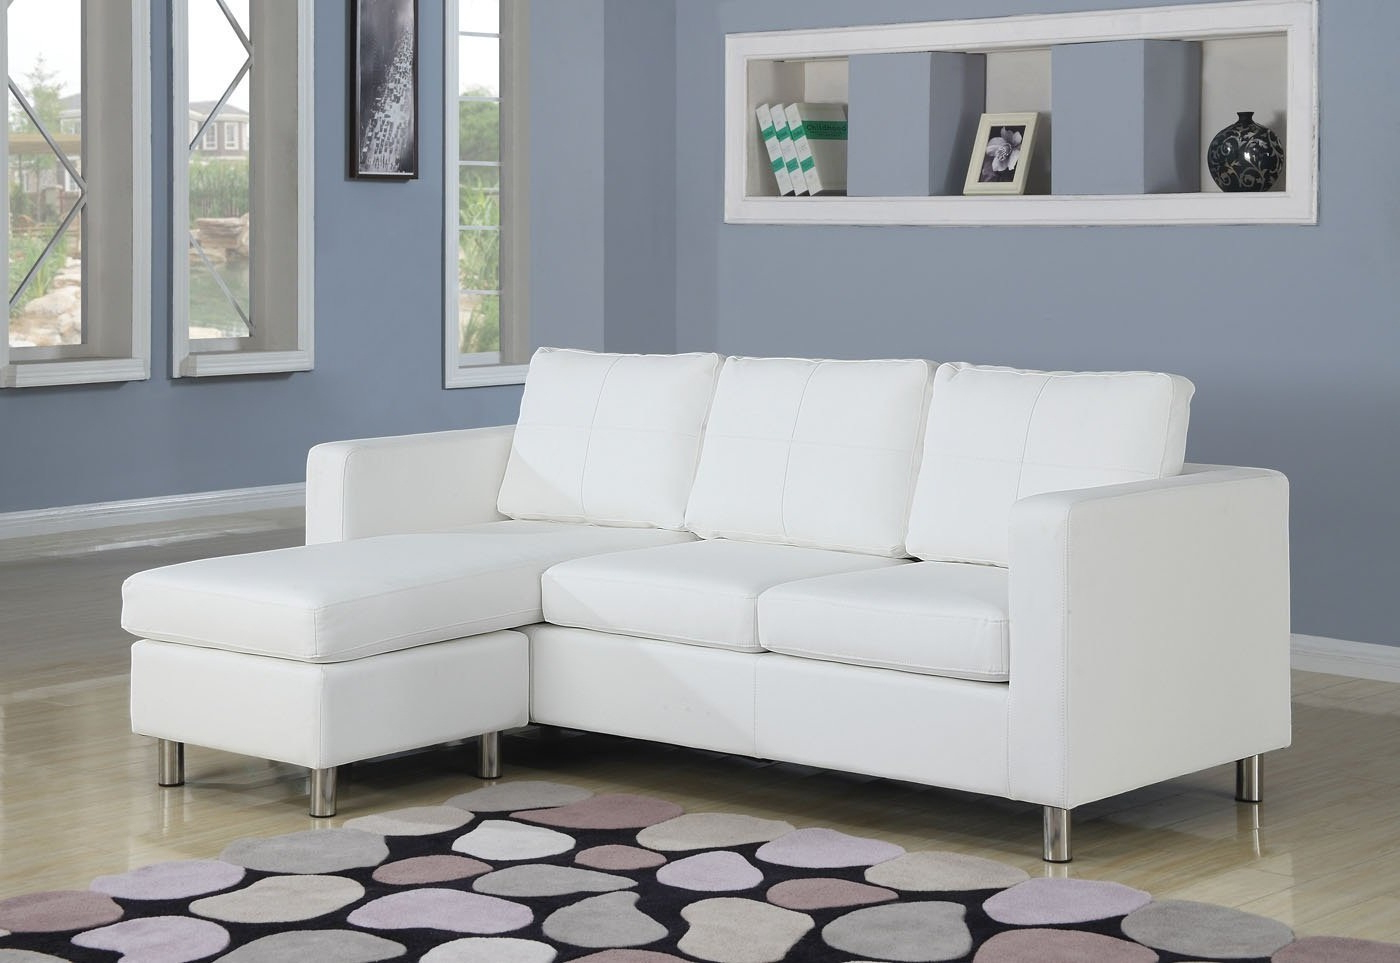 4pc Crowningshield Contemporary Chaise Sectional Sofas In Famous Small Sectional Sofa With Chaise: Perfect Choice For A (View 4 of 20)